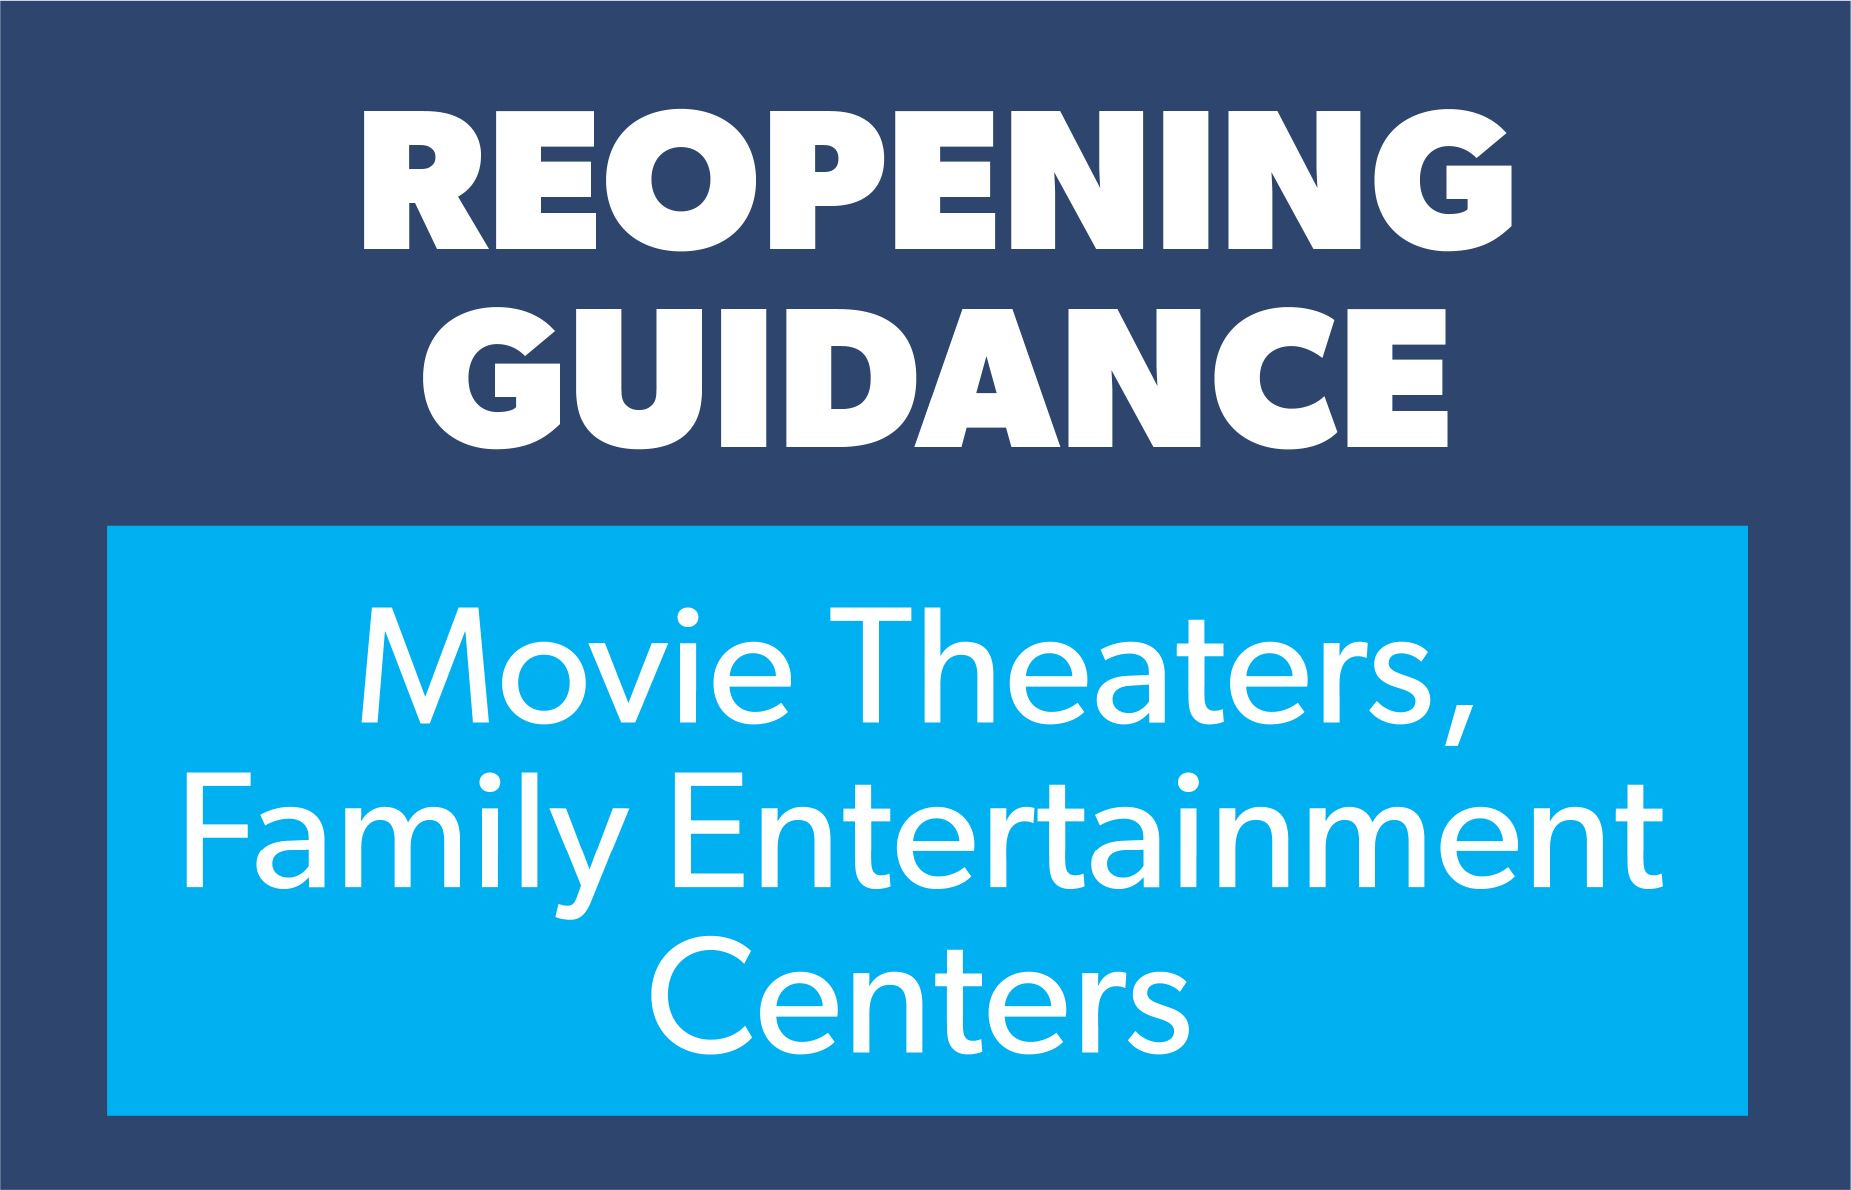 reopening-movie theaters